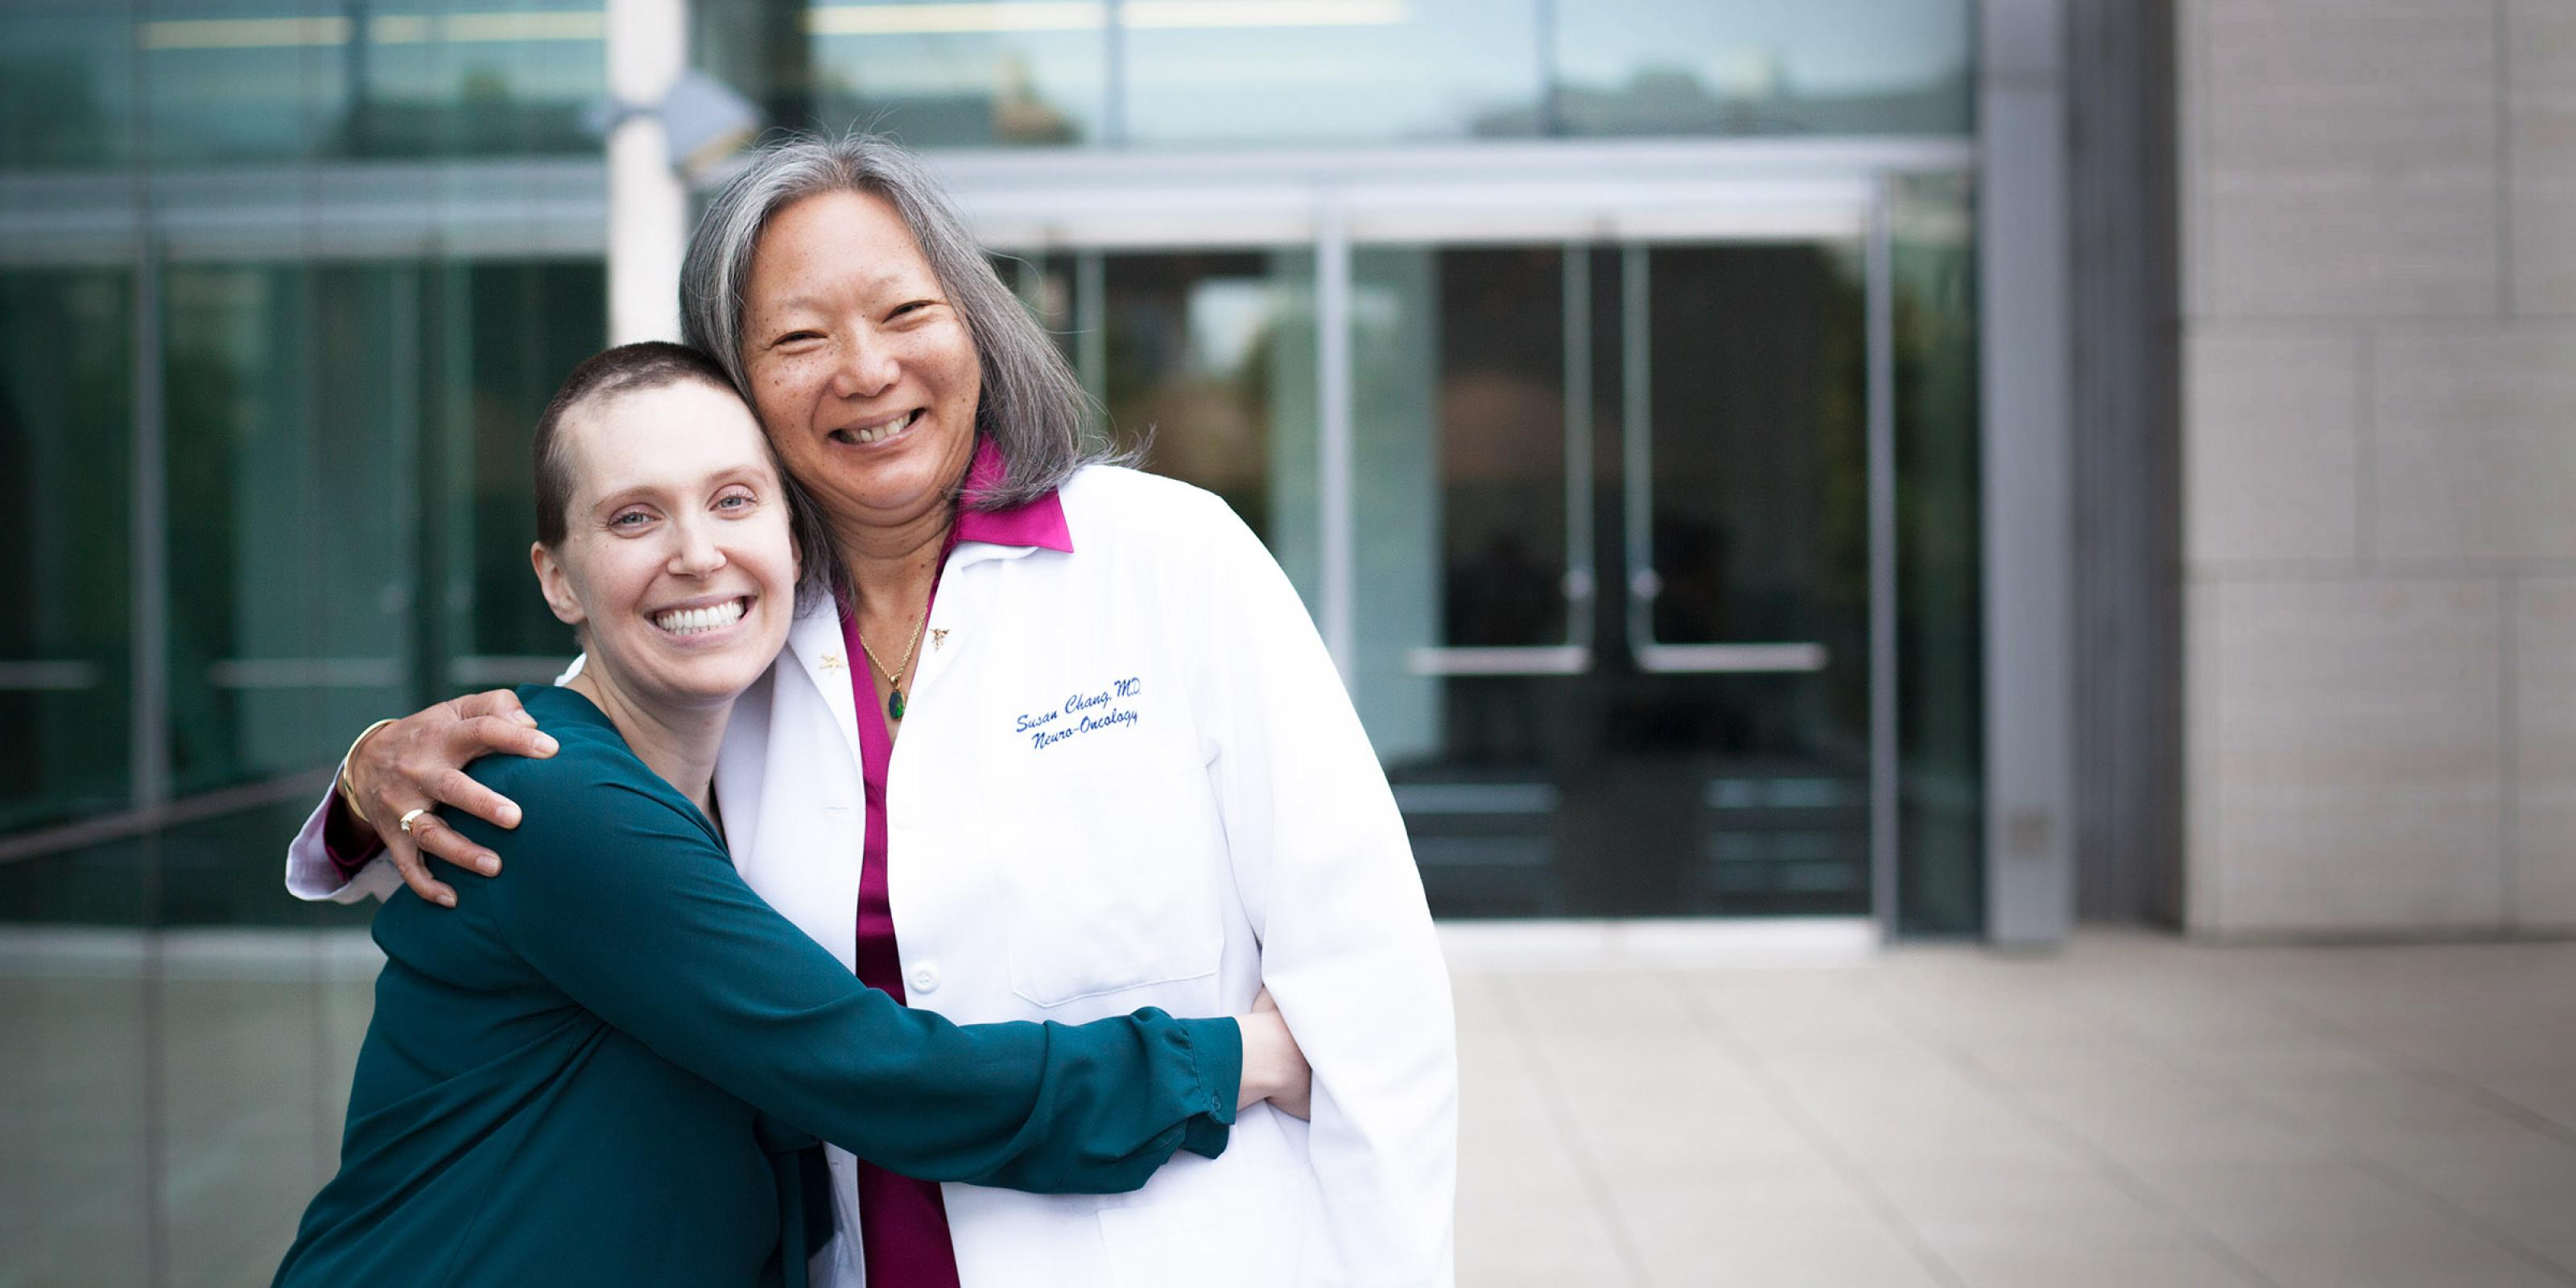 UCSF neuro-oncologist Susan Chang with patient